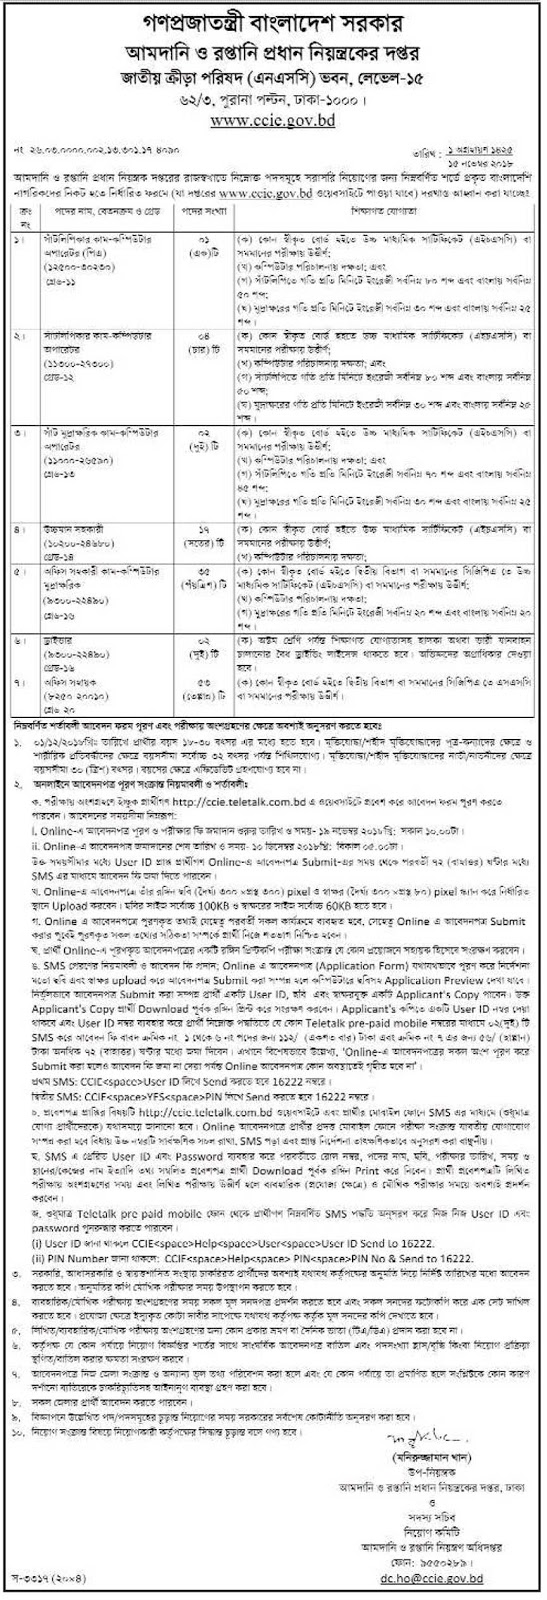 Chief Controller of Imports and Exports Job Circular 2018